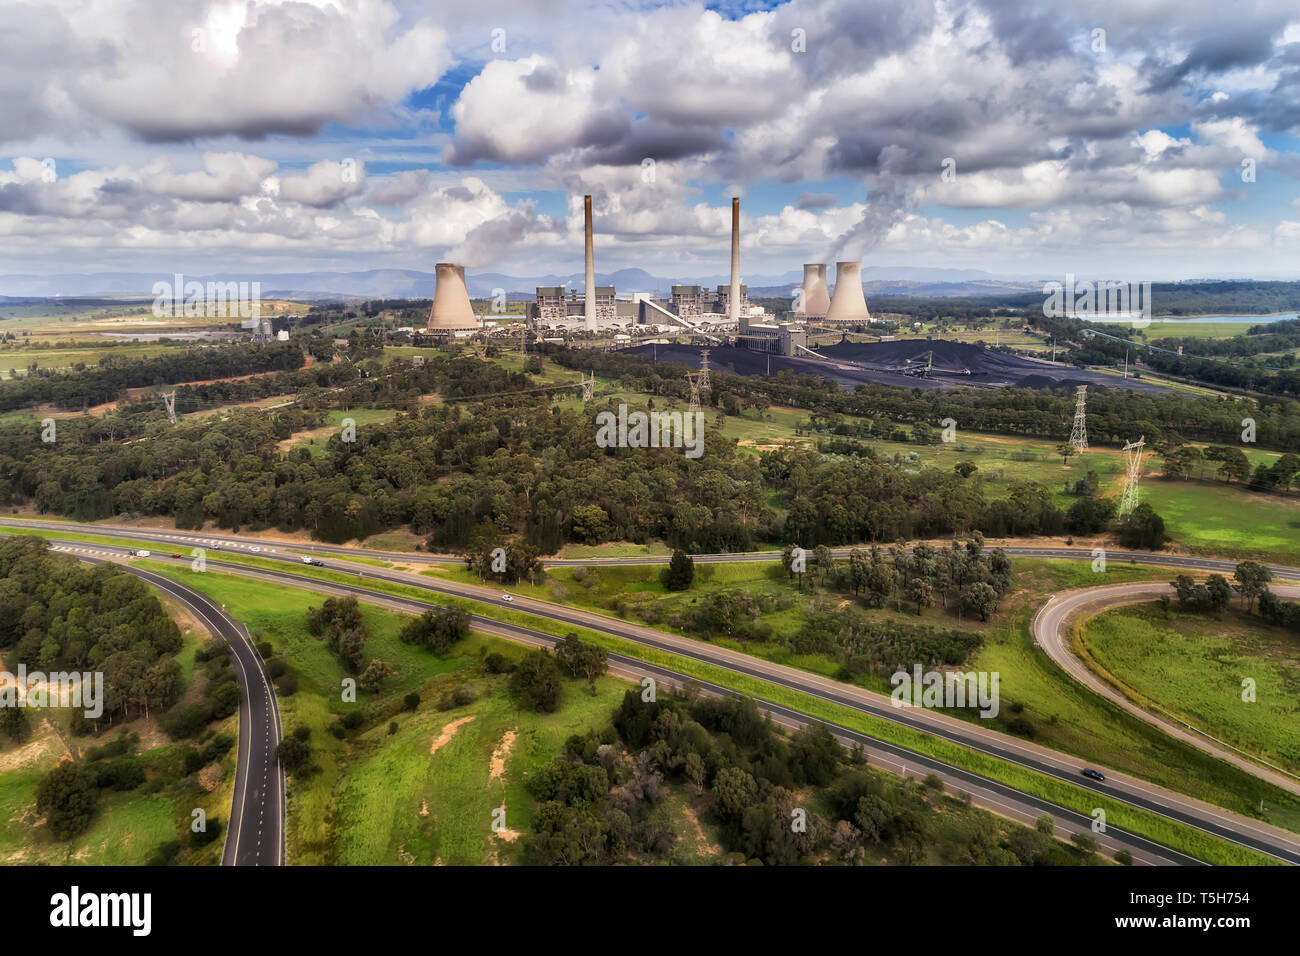 Bayswater power plant in Australian Upper Hunter Valley generating electricity from fossil fuel black coal emitting carbon dioxide into atmosphere on  Stock Photo